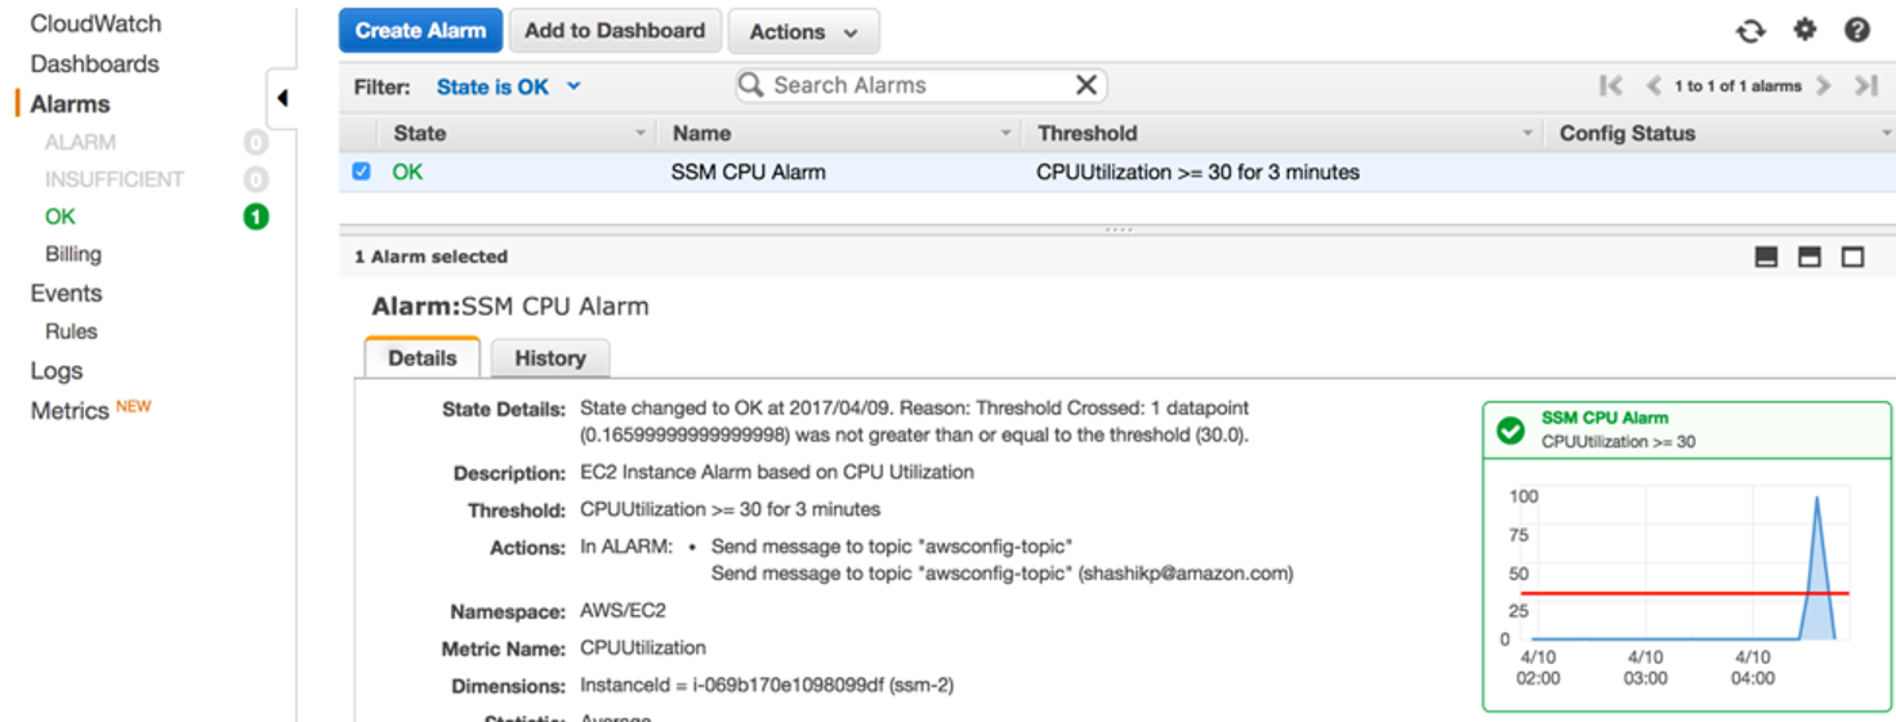 AWS Config Support for Amazon CloudWatch Alarms | AWS ...